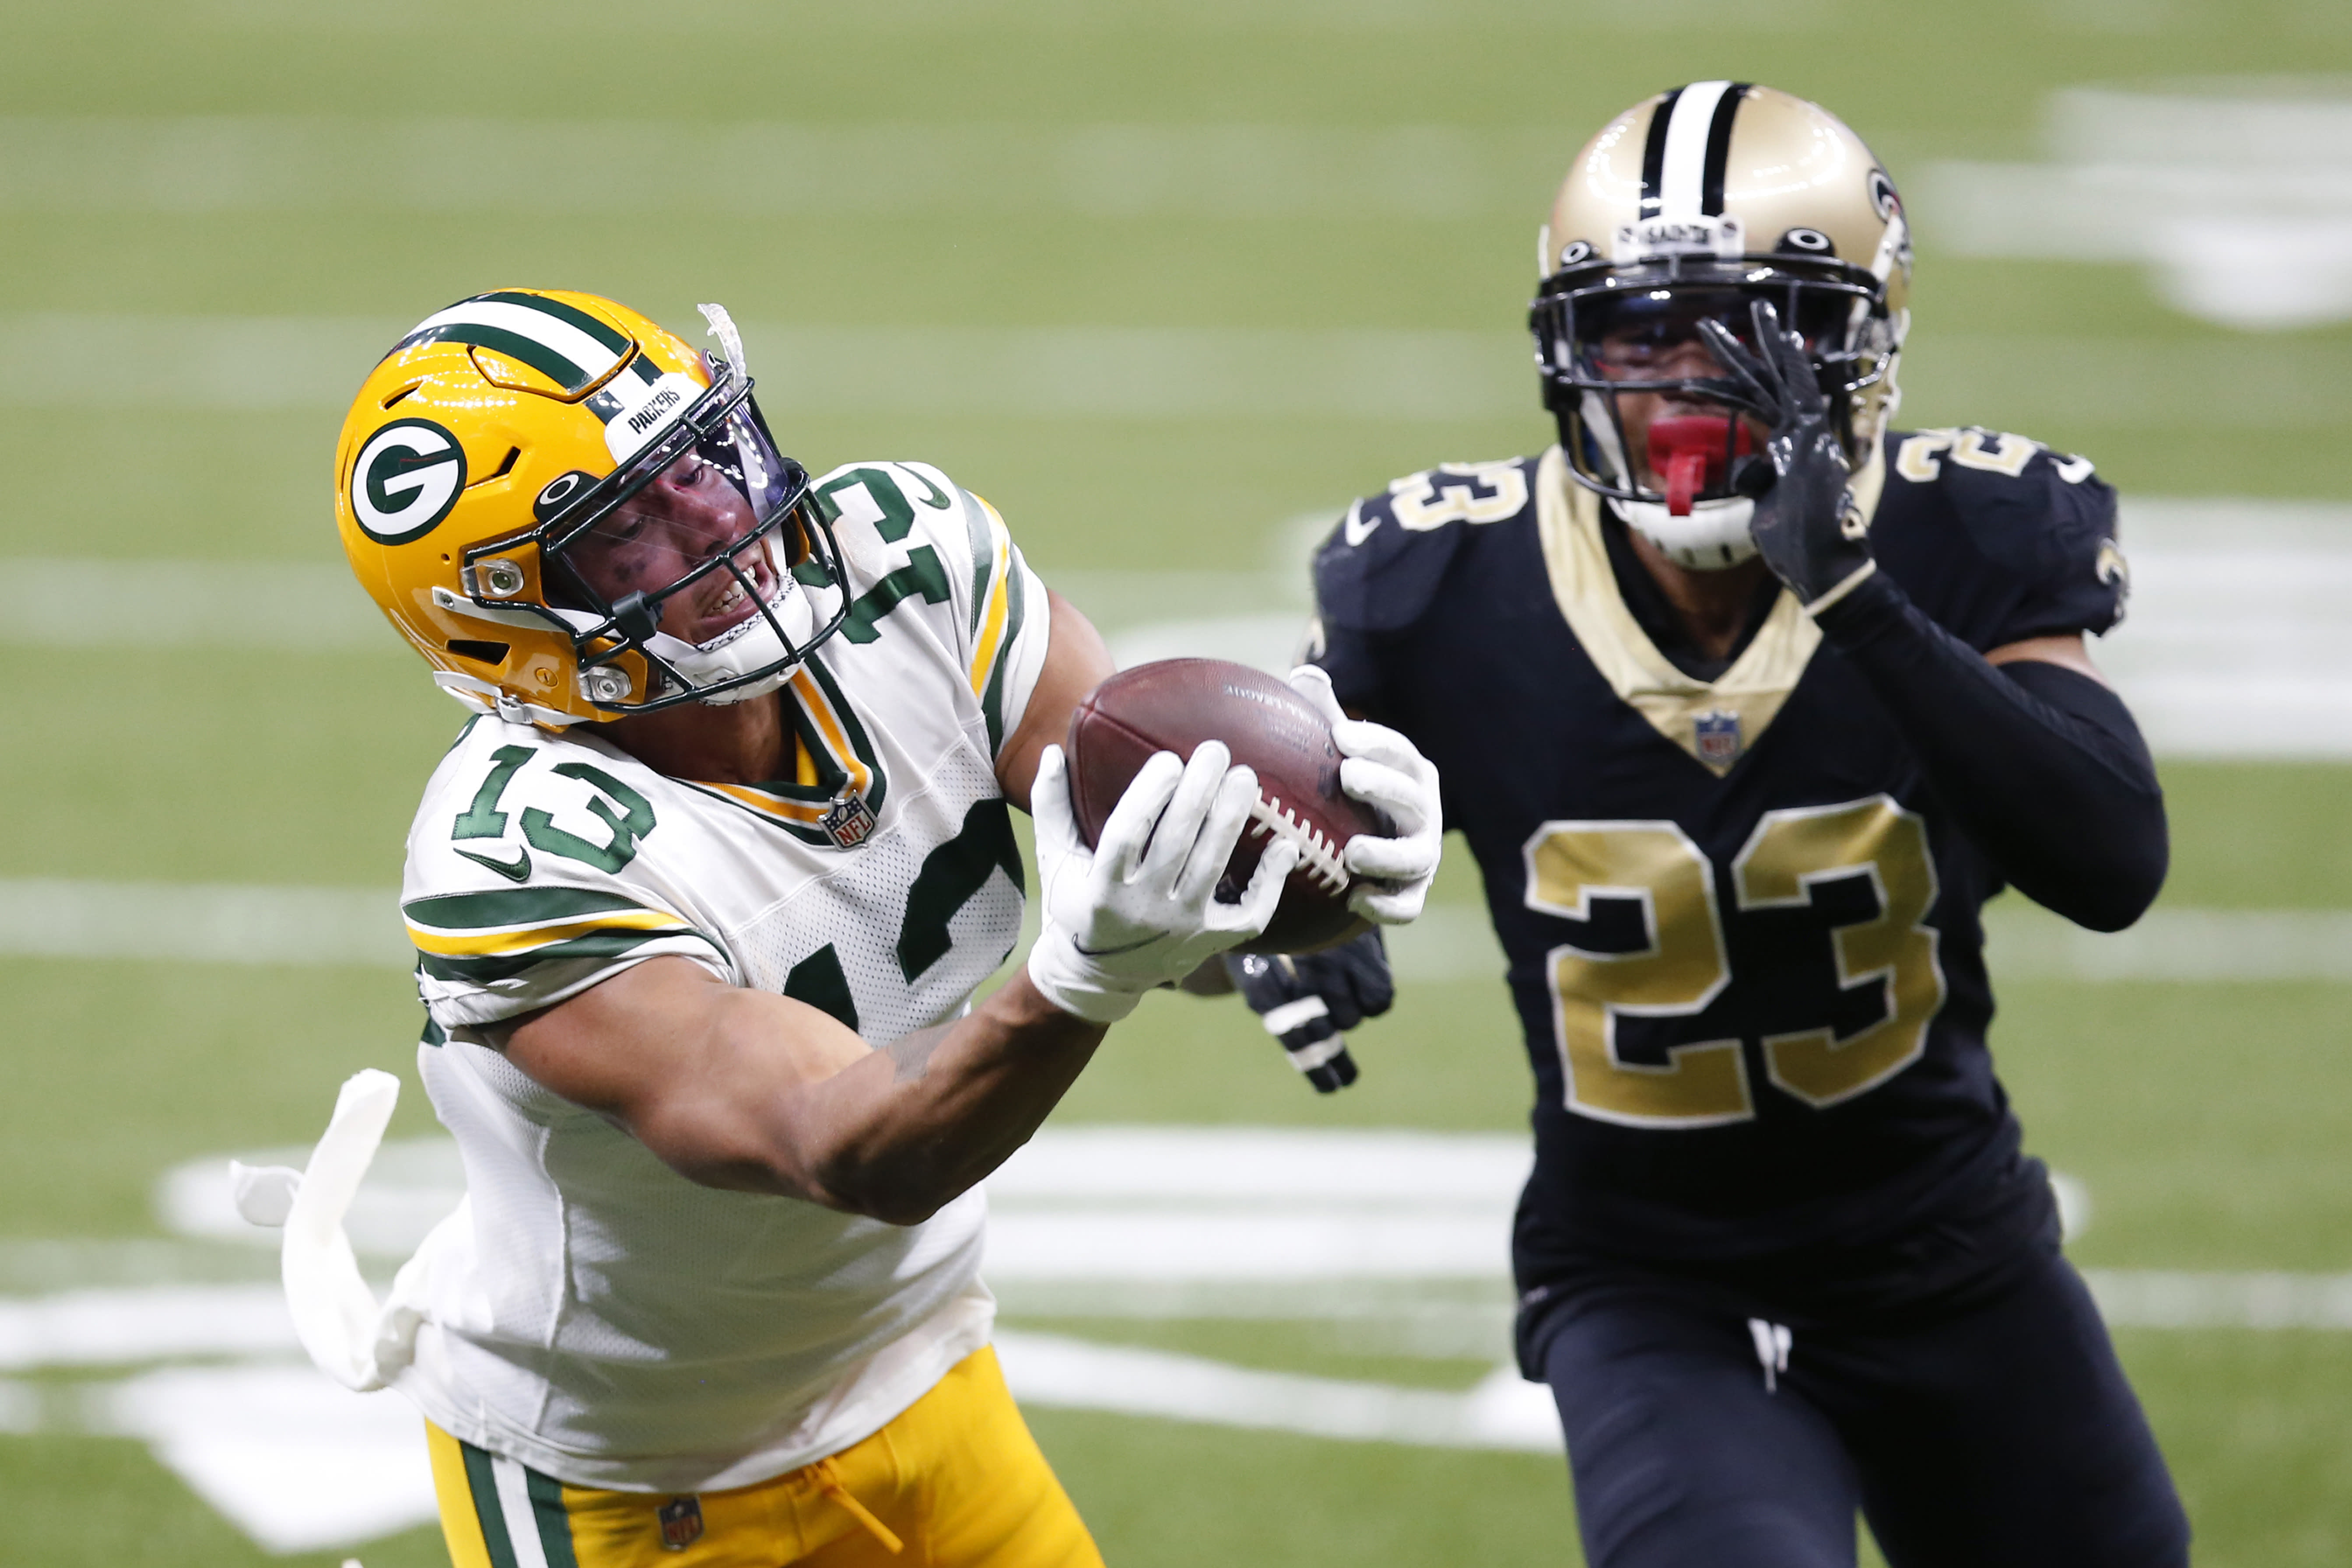 Green Bay Packers wide receiver Allen Lazard (13) pulls in a 48 yard pass in front of New Orleans Saints cornerback Marshon Lattimore (23) in the first half of an NFL football game in New Orleans, Sunday, Sept. 27, 2020. (AP Photo/Brett Duke)